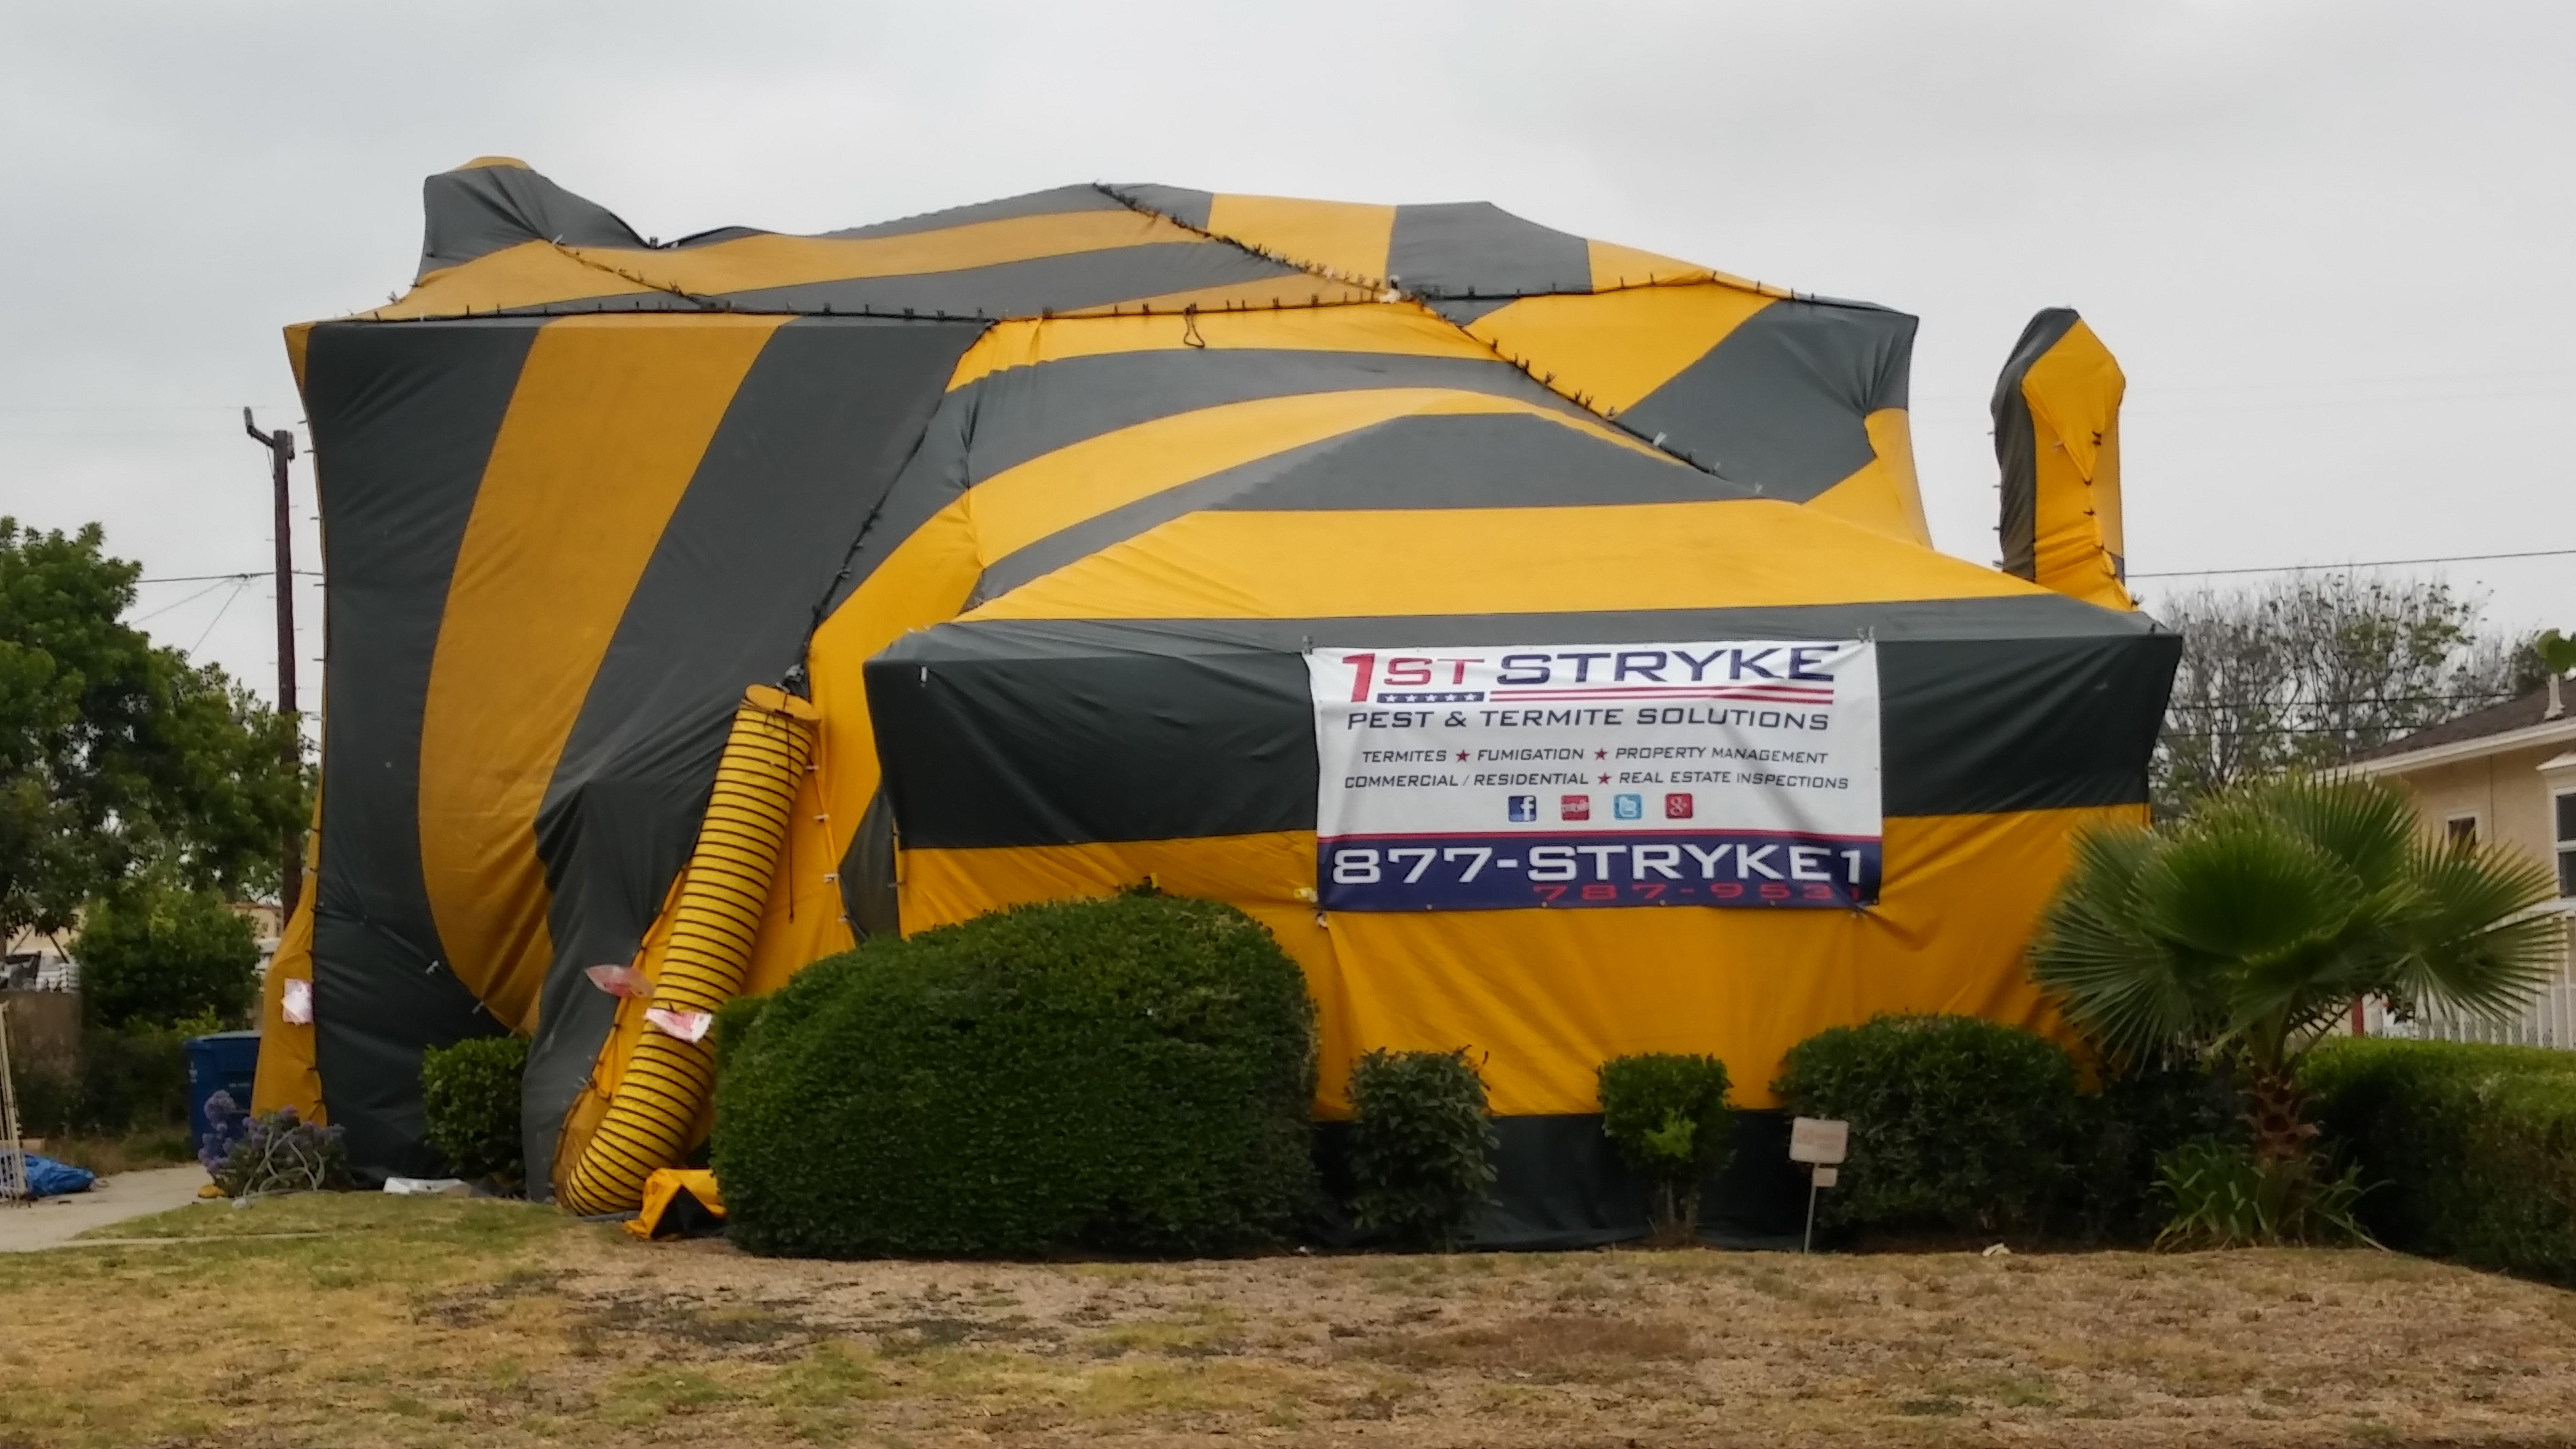 Bee Removal & Pest Control in Norwalk and Torrance CA - 1st Stryke Pest u0026 Termite